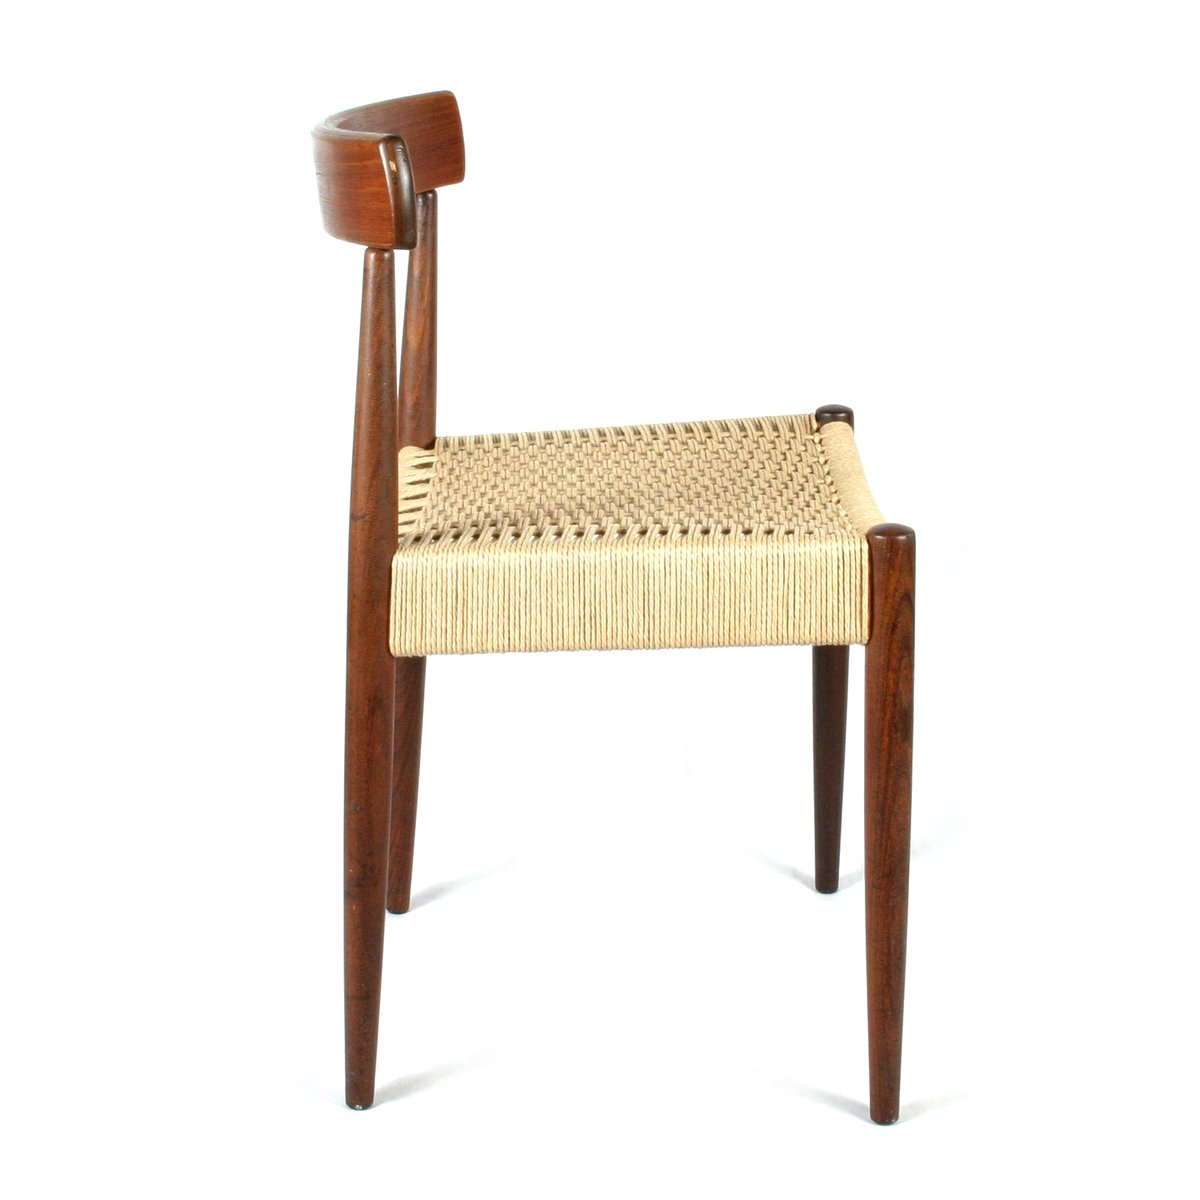 Mid century scandinavian chair by arne hovmand olsen for mogens kold for sale at pamono - Scandinavian chair ...